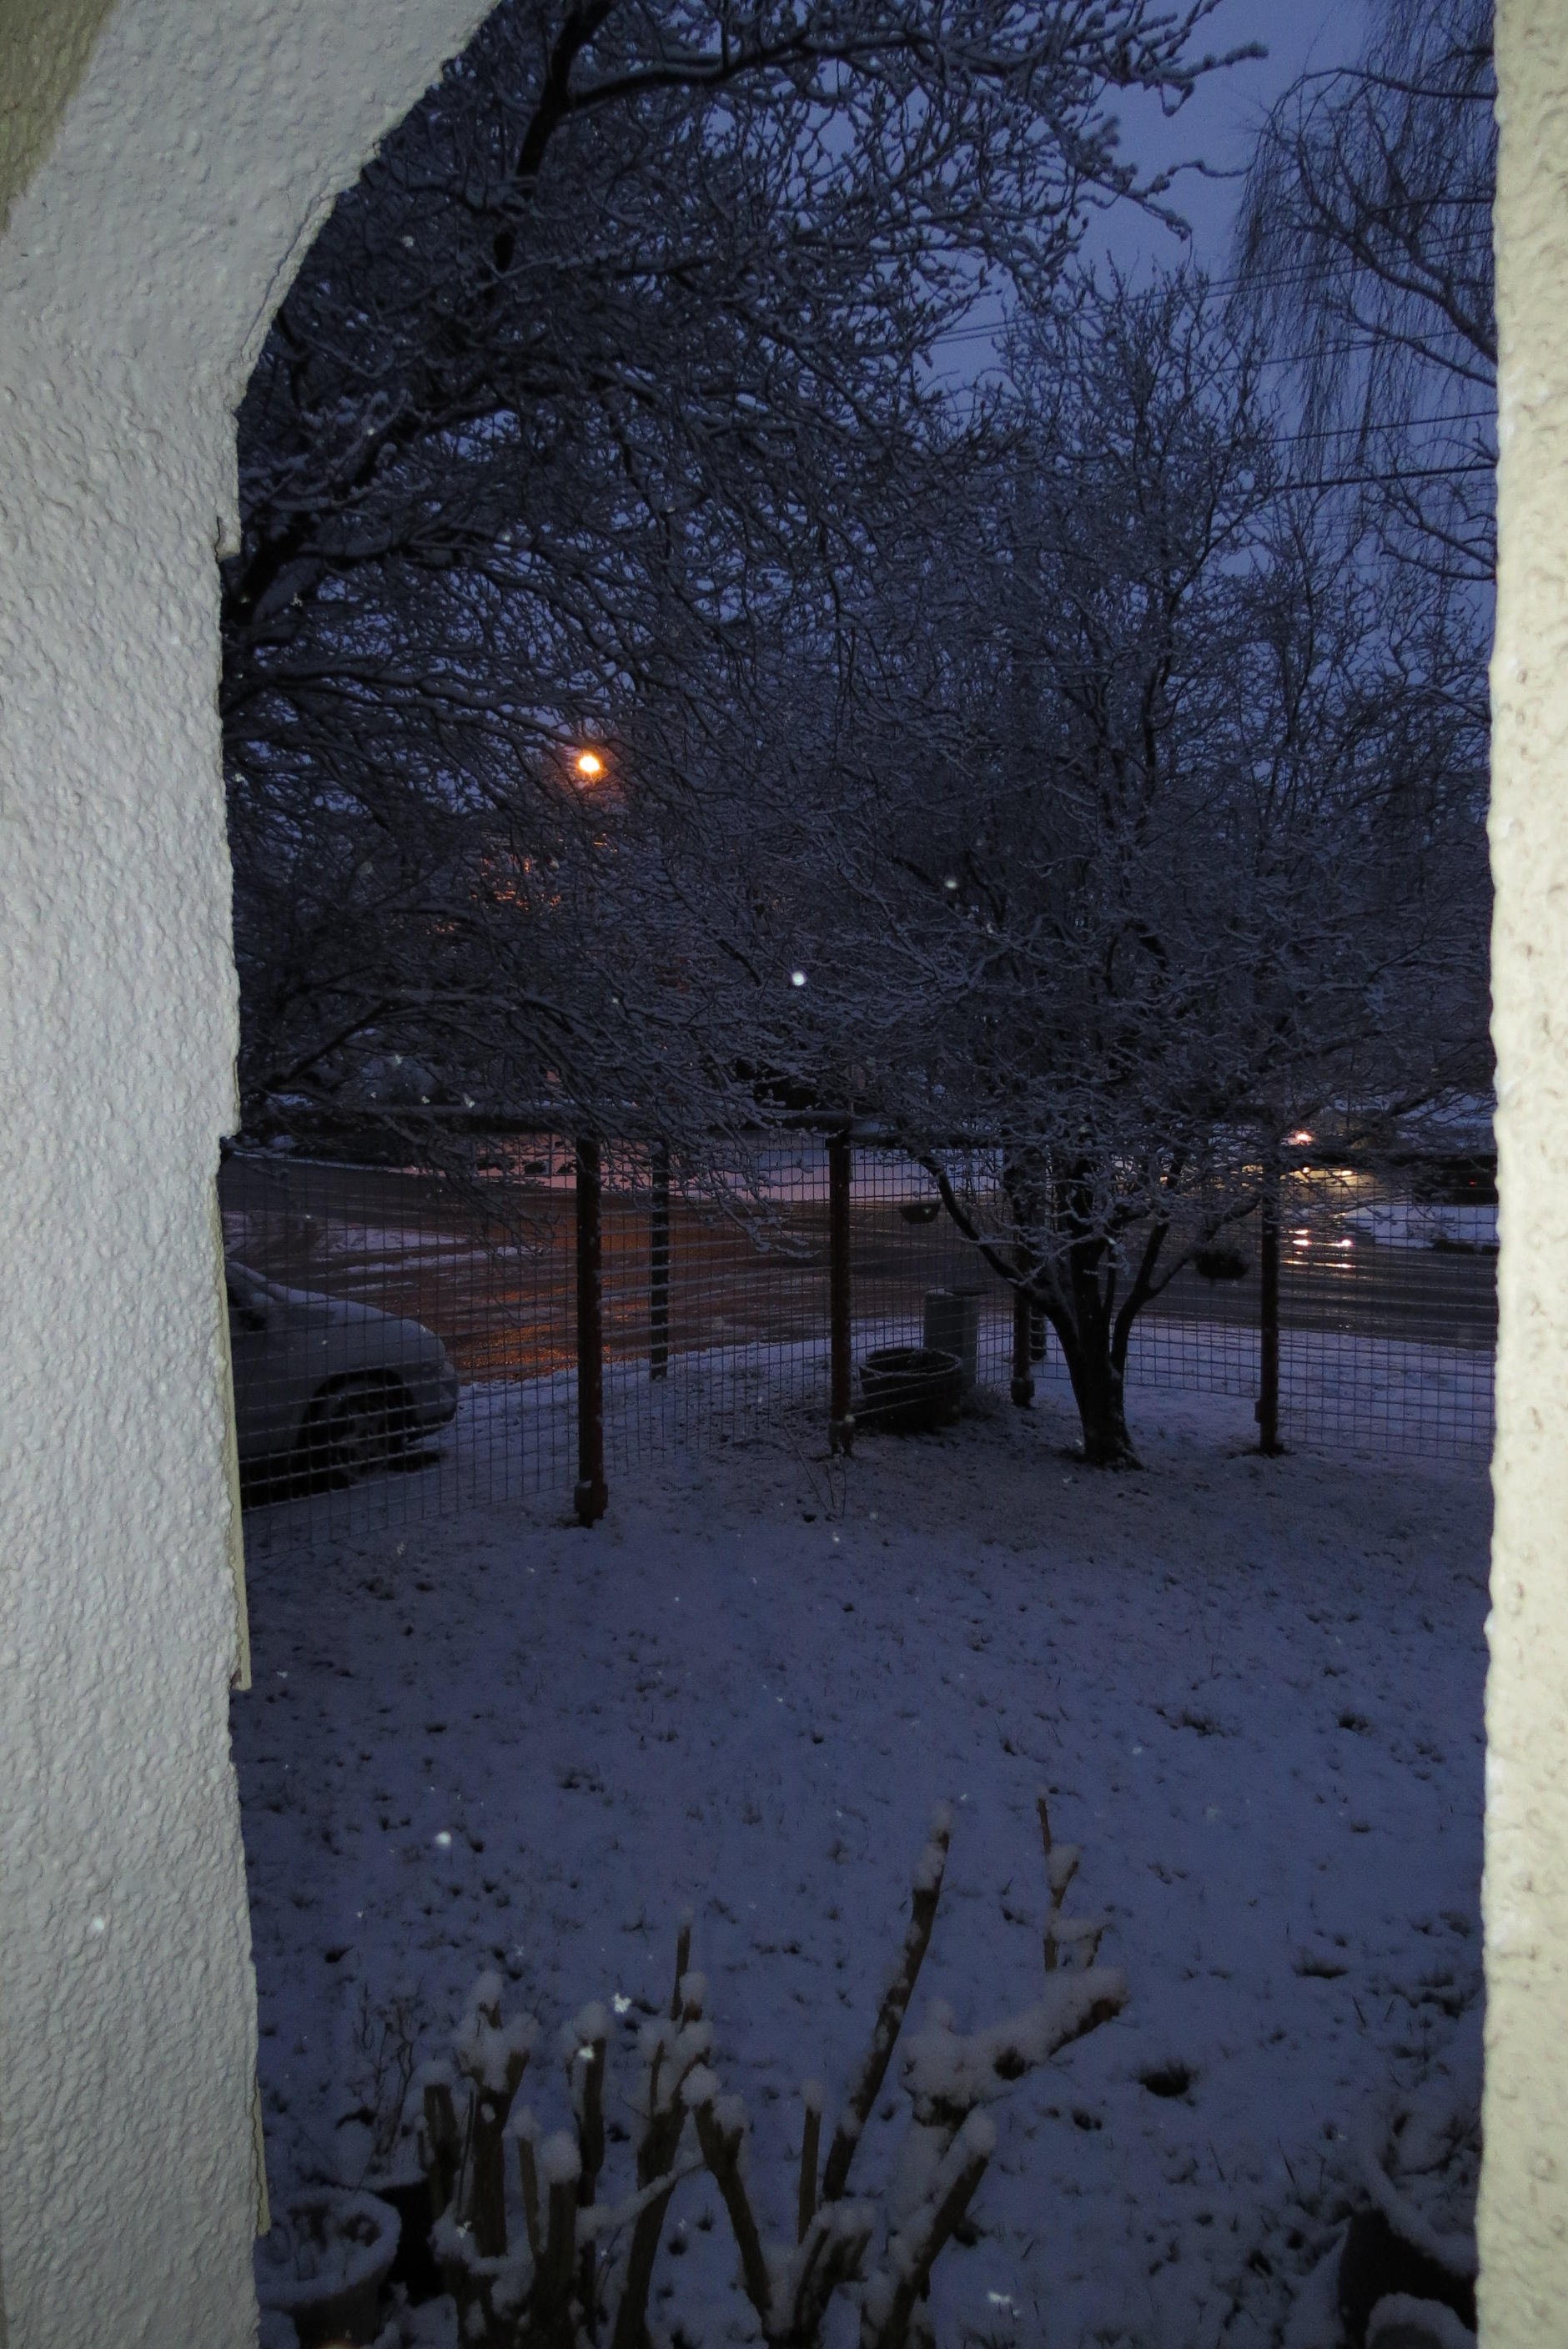 evening light looking through arch at a snow covered yard, all tones of blue.